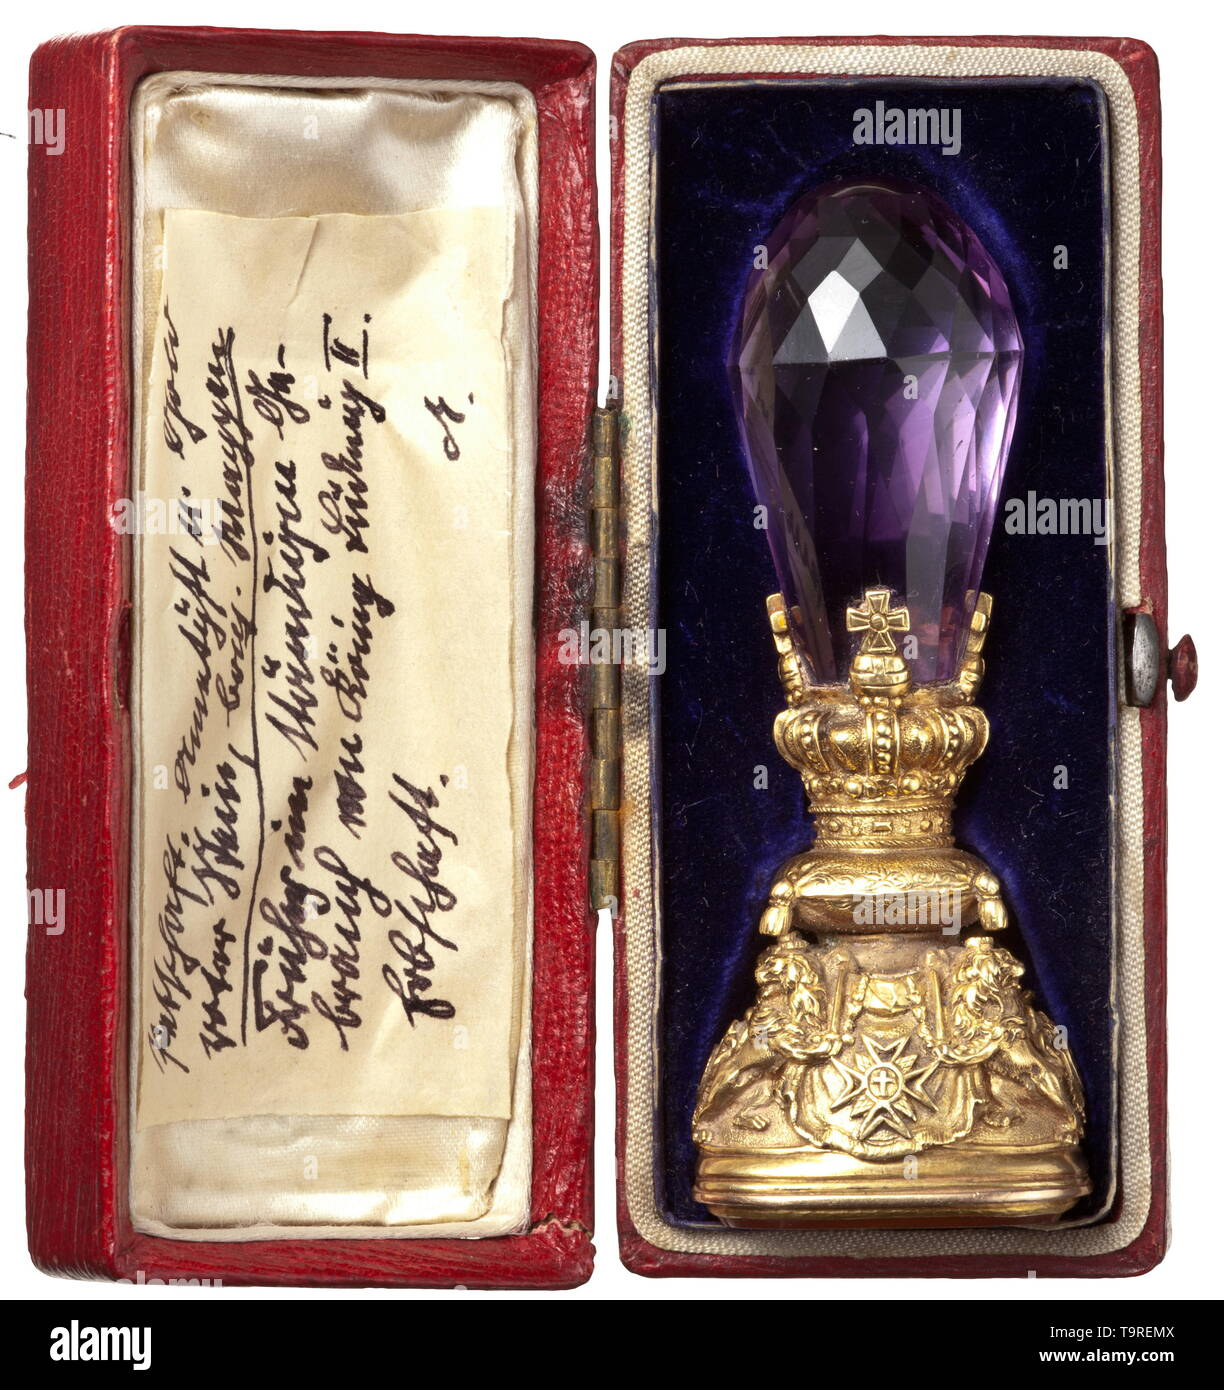 King Ludwig II of Bavaria (1845 - 1886) - a royal sea l Golden mounting decorated in relief, the handle formed of a large cut amethyst, the seal surface made from a rectangular carnelian with the deeply chiselled, large Bavarian state coat of arms above the collars of the order, surmounted by the ermine coat and crown. The golden mounting consists of the Bavarian royal crown on the coronation cushion, carried by the Bavarian lions armed with swords, with the House Knight's Order of St. Hubert, the Military House Knight's Order of St. George, the , Additional-Rights-Clearance-Info-Not-Available Stock Photo